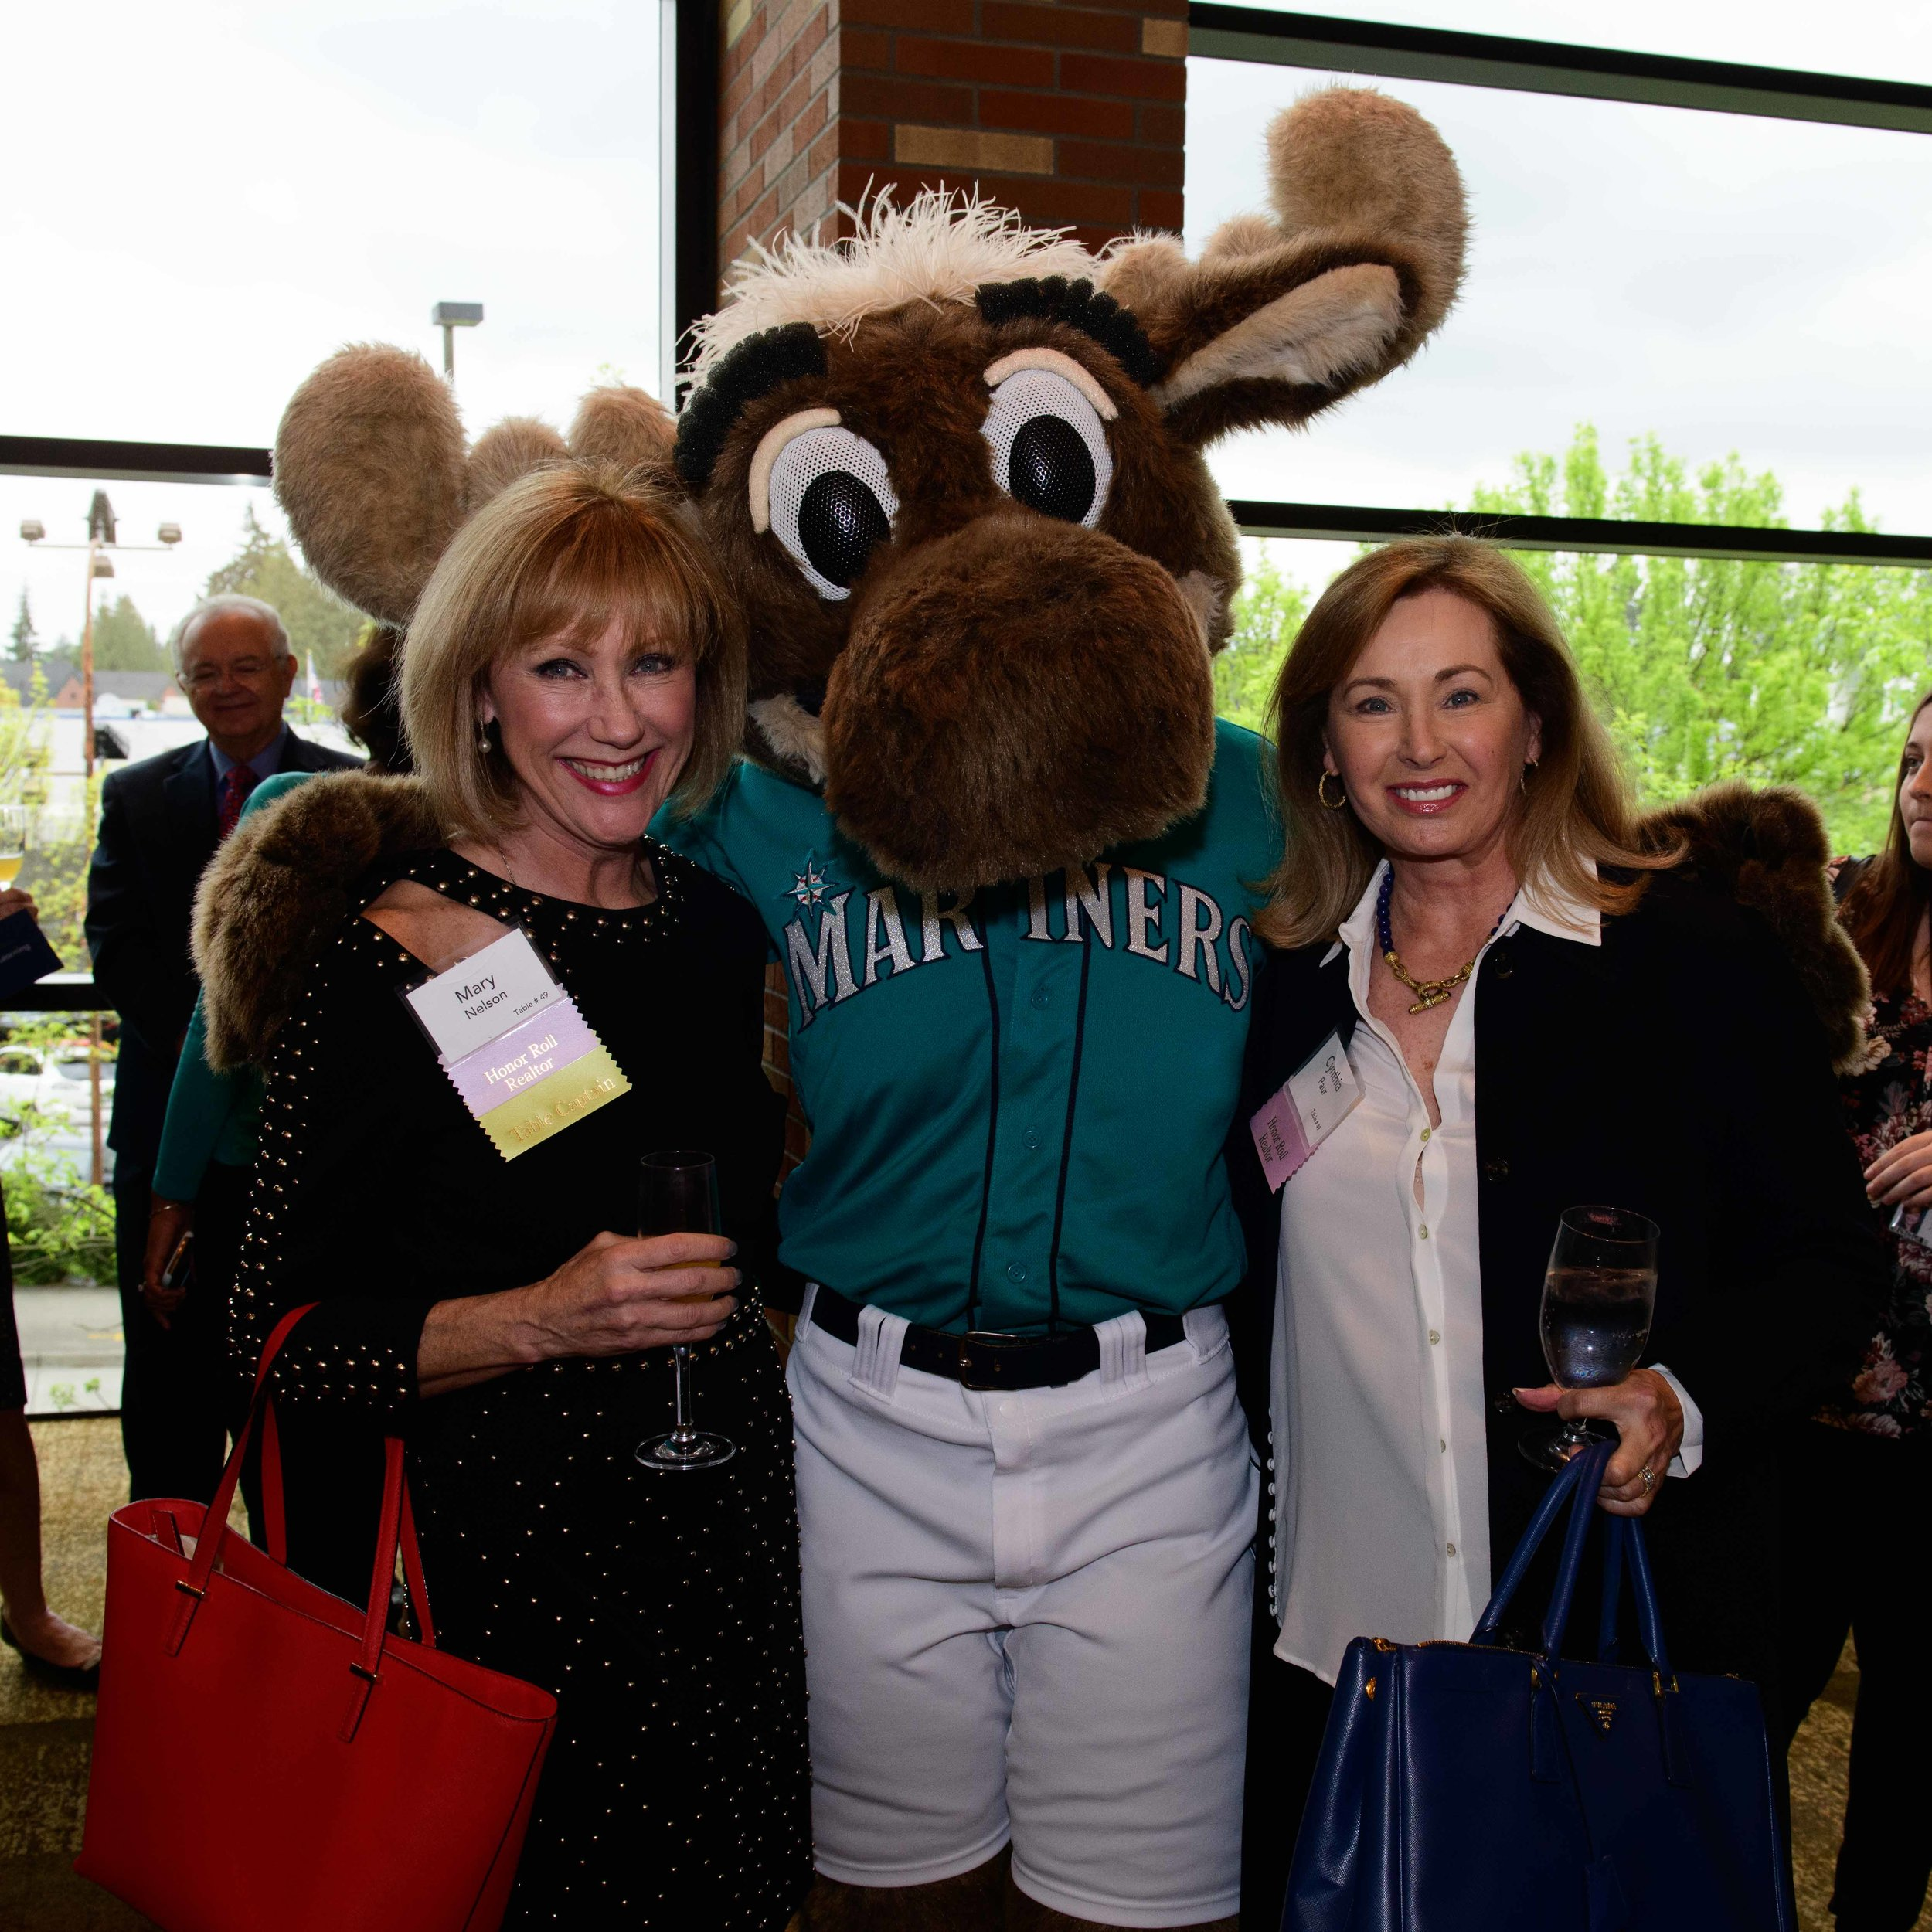 RSIR Broker Mary Nelson (left) and I were ecstatic to meet the Mariner Moose at the event!